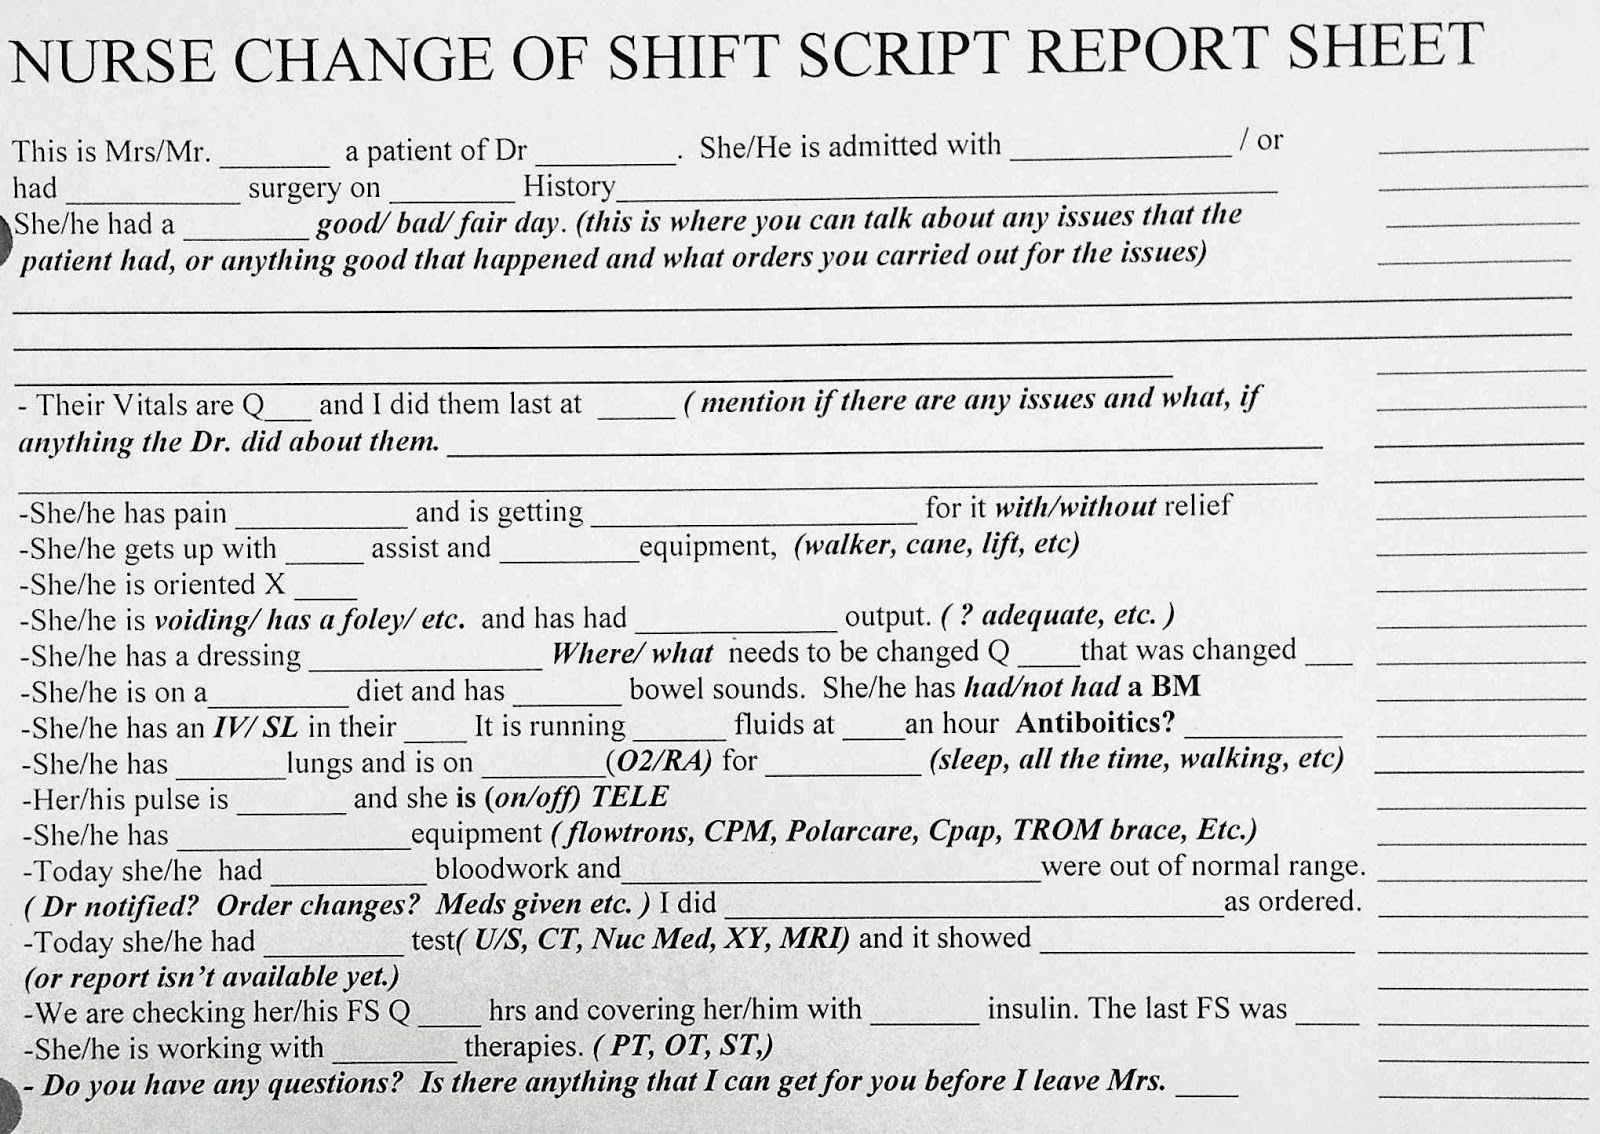 awesome new grad or experienced nurse change of shift bedside report sheet script bsn rn. Black Bedroom Furniture Sets. Home Design Ideas